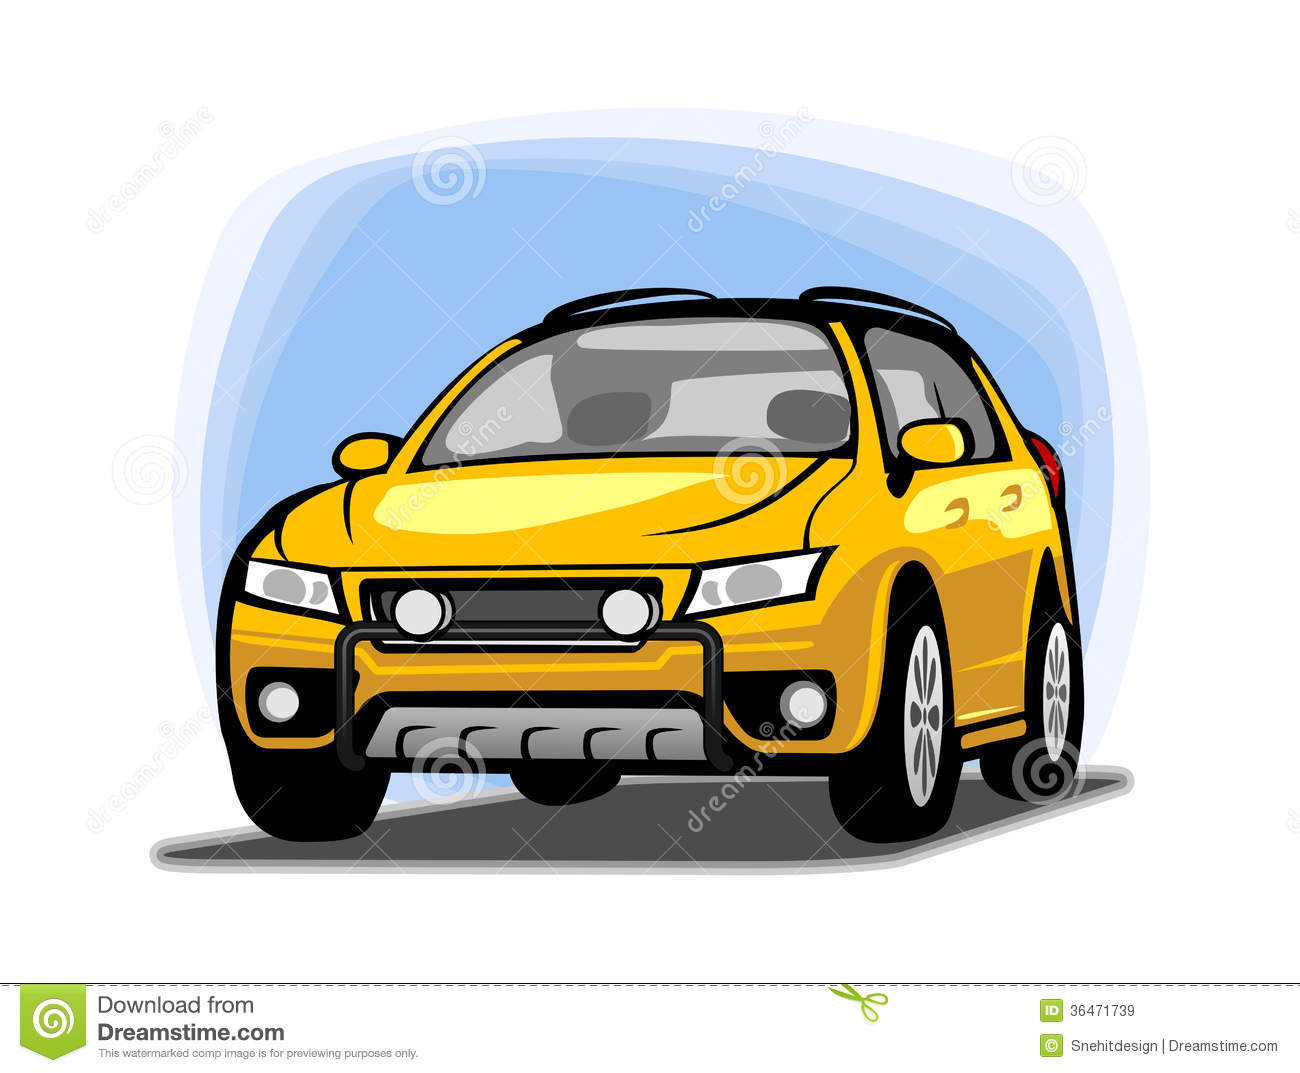 Car Clipart Royalty Free Stock Images.